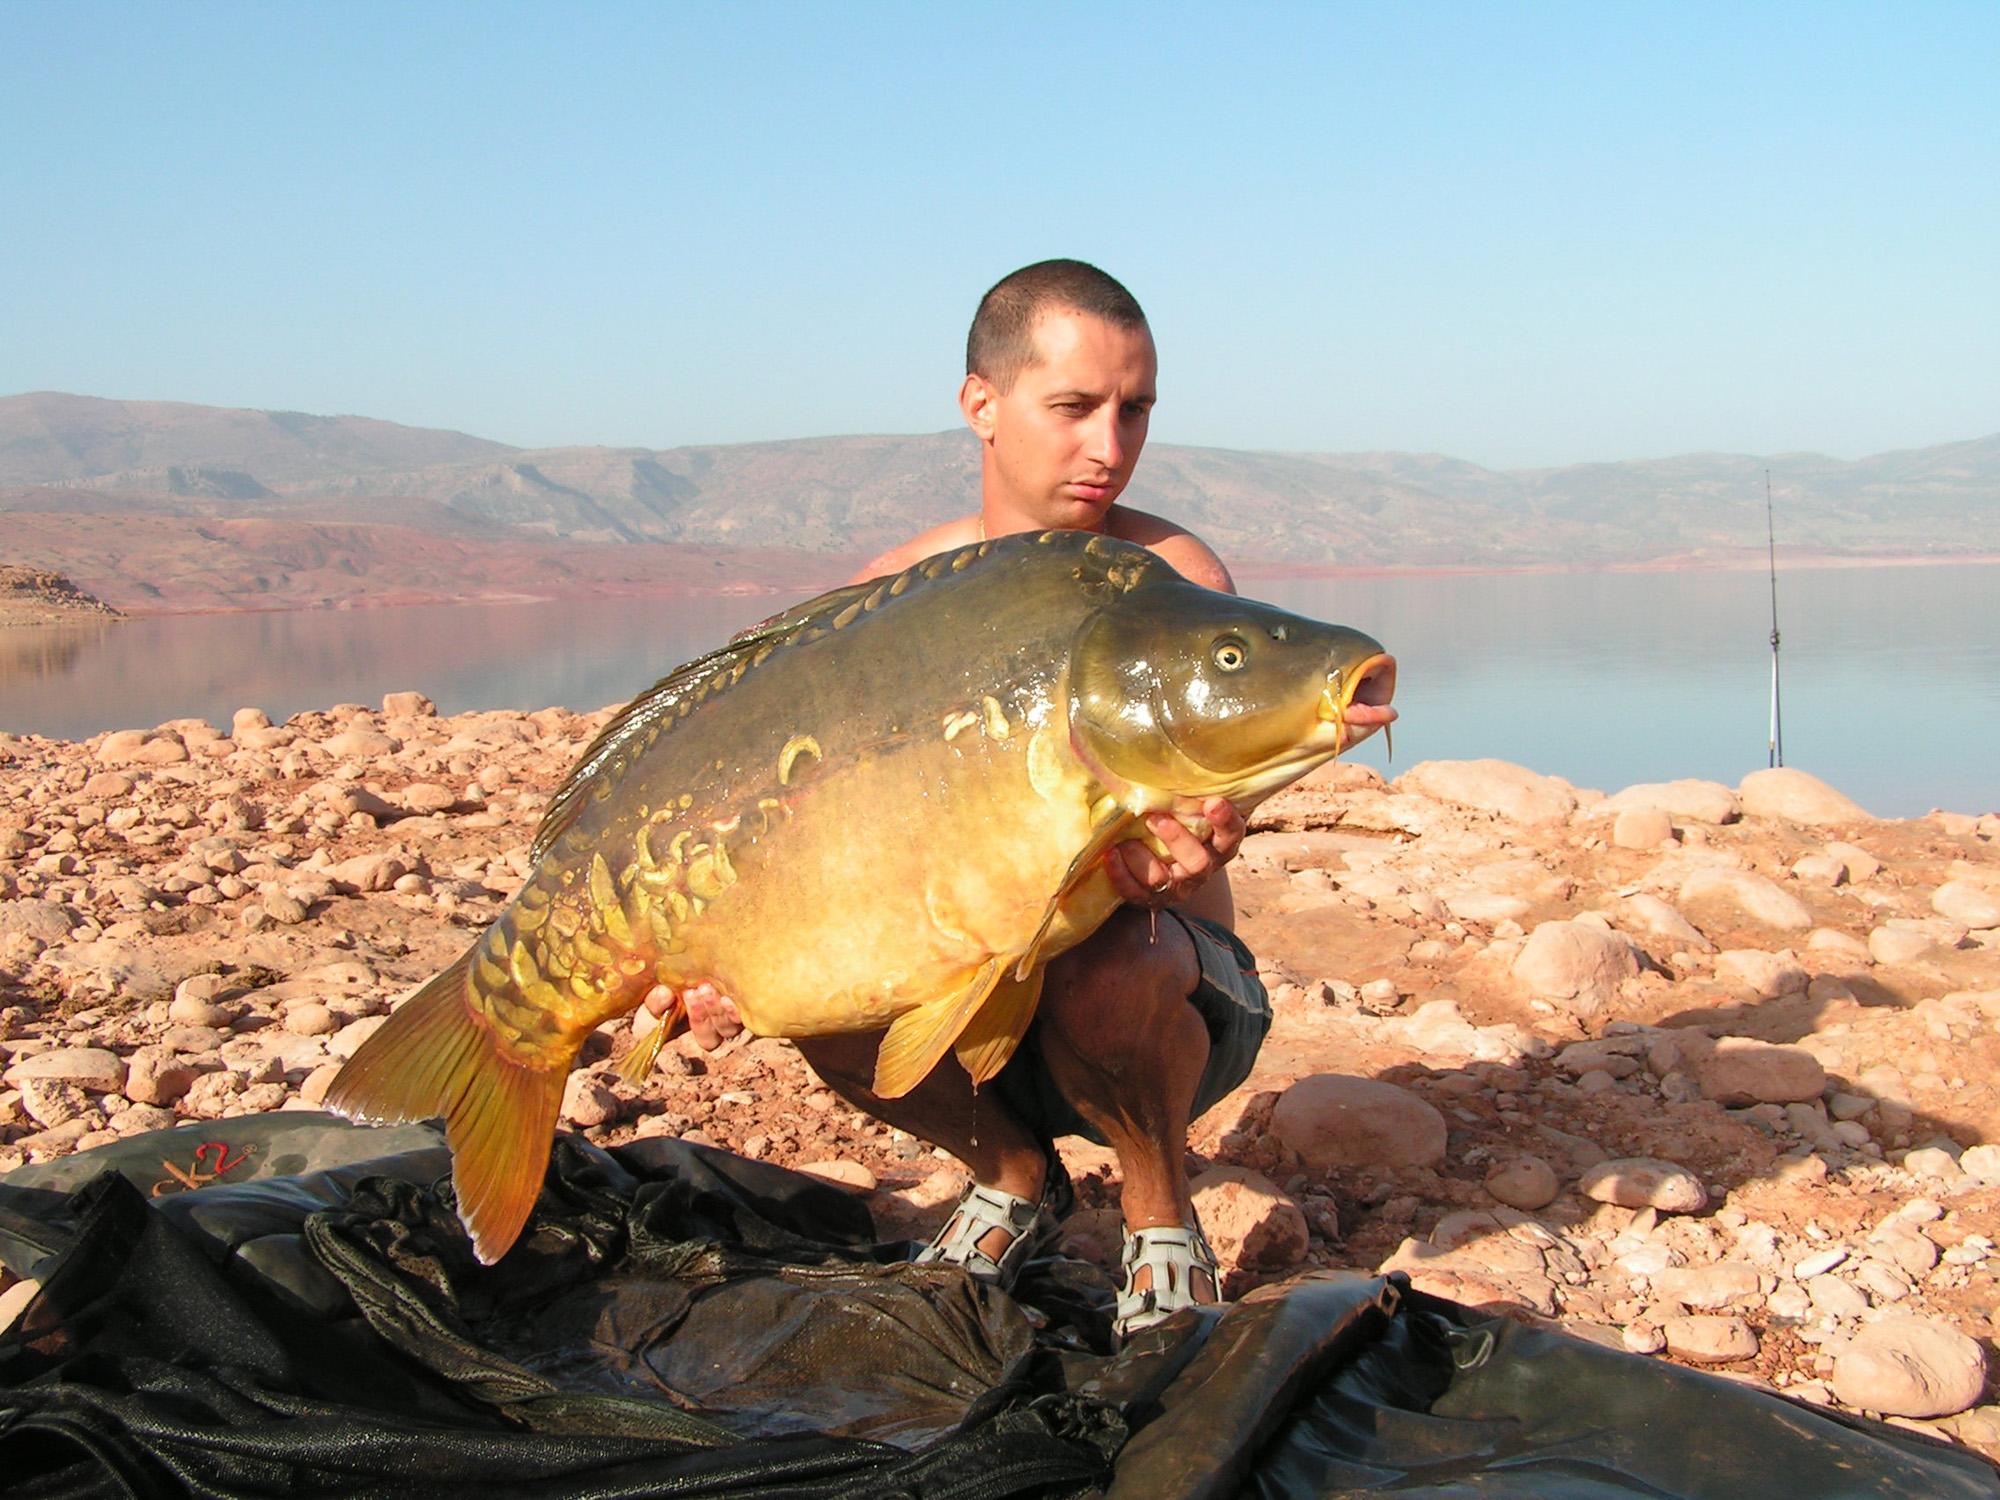 http://www.starbaits.com/fichiers/images/team/gallery/COLLET_Jerome/1 Jérôme Collet.JPG